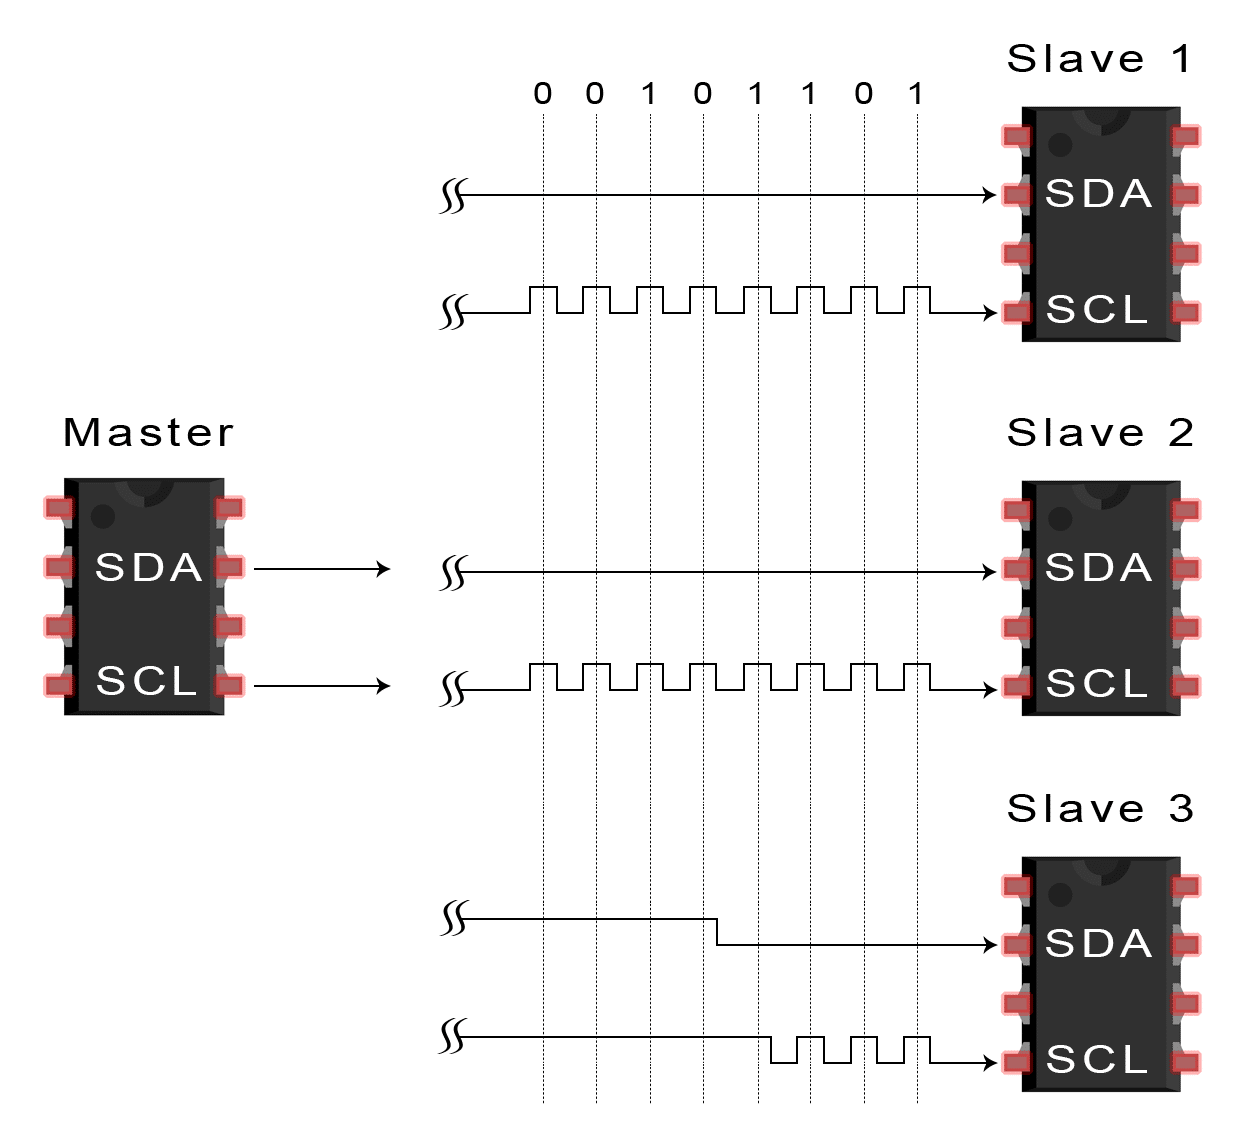 Basics Of The I2c Communication Protocol Uses Integrated Circuit 6 To Stop Data Transmission Master Sends A Condition Slave By Switching Scl High Before Sda